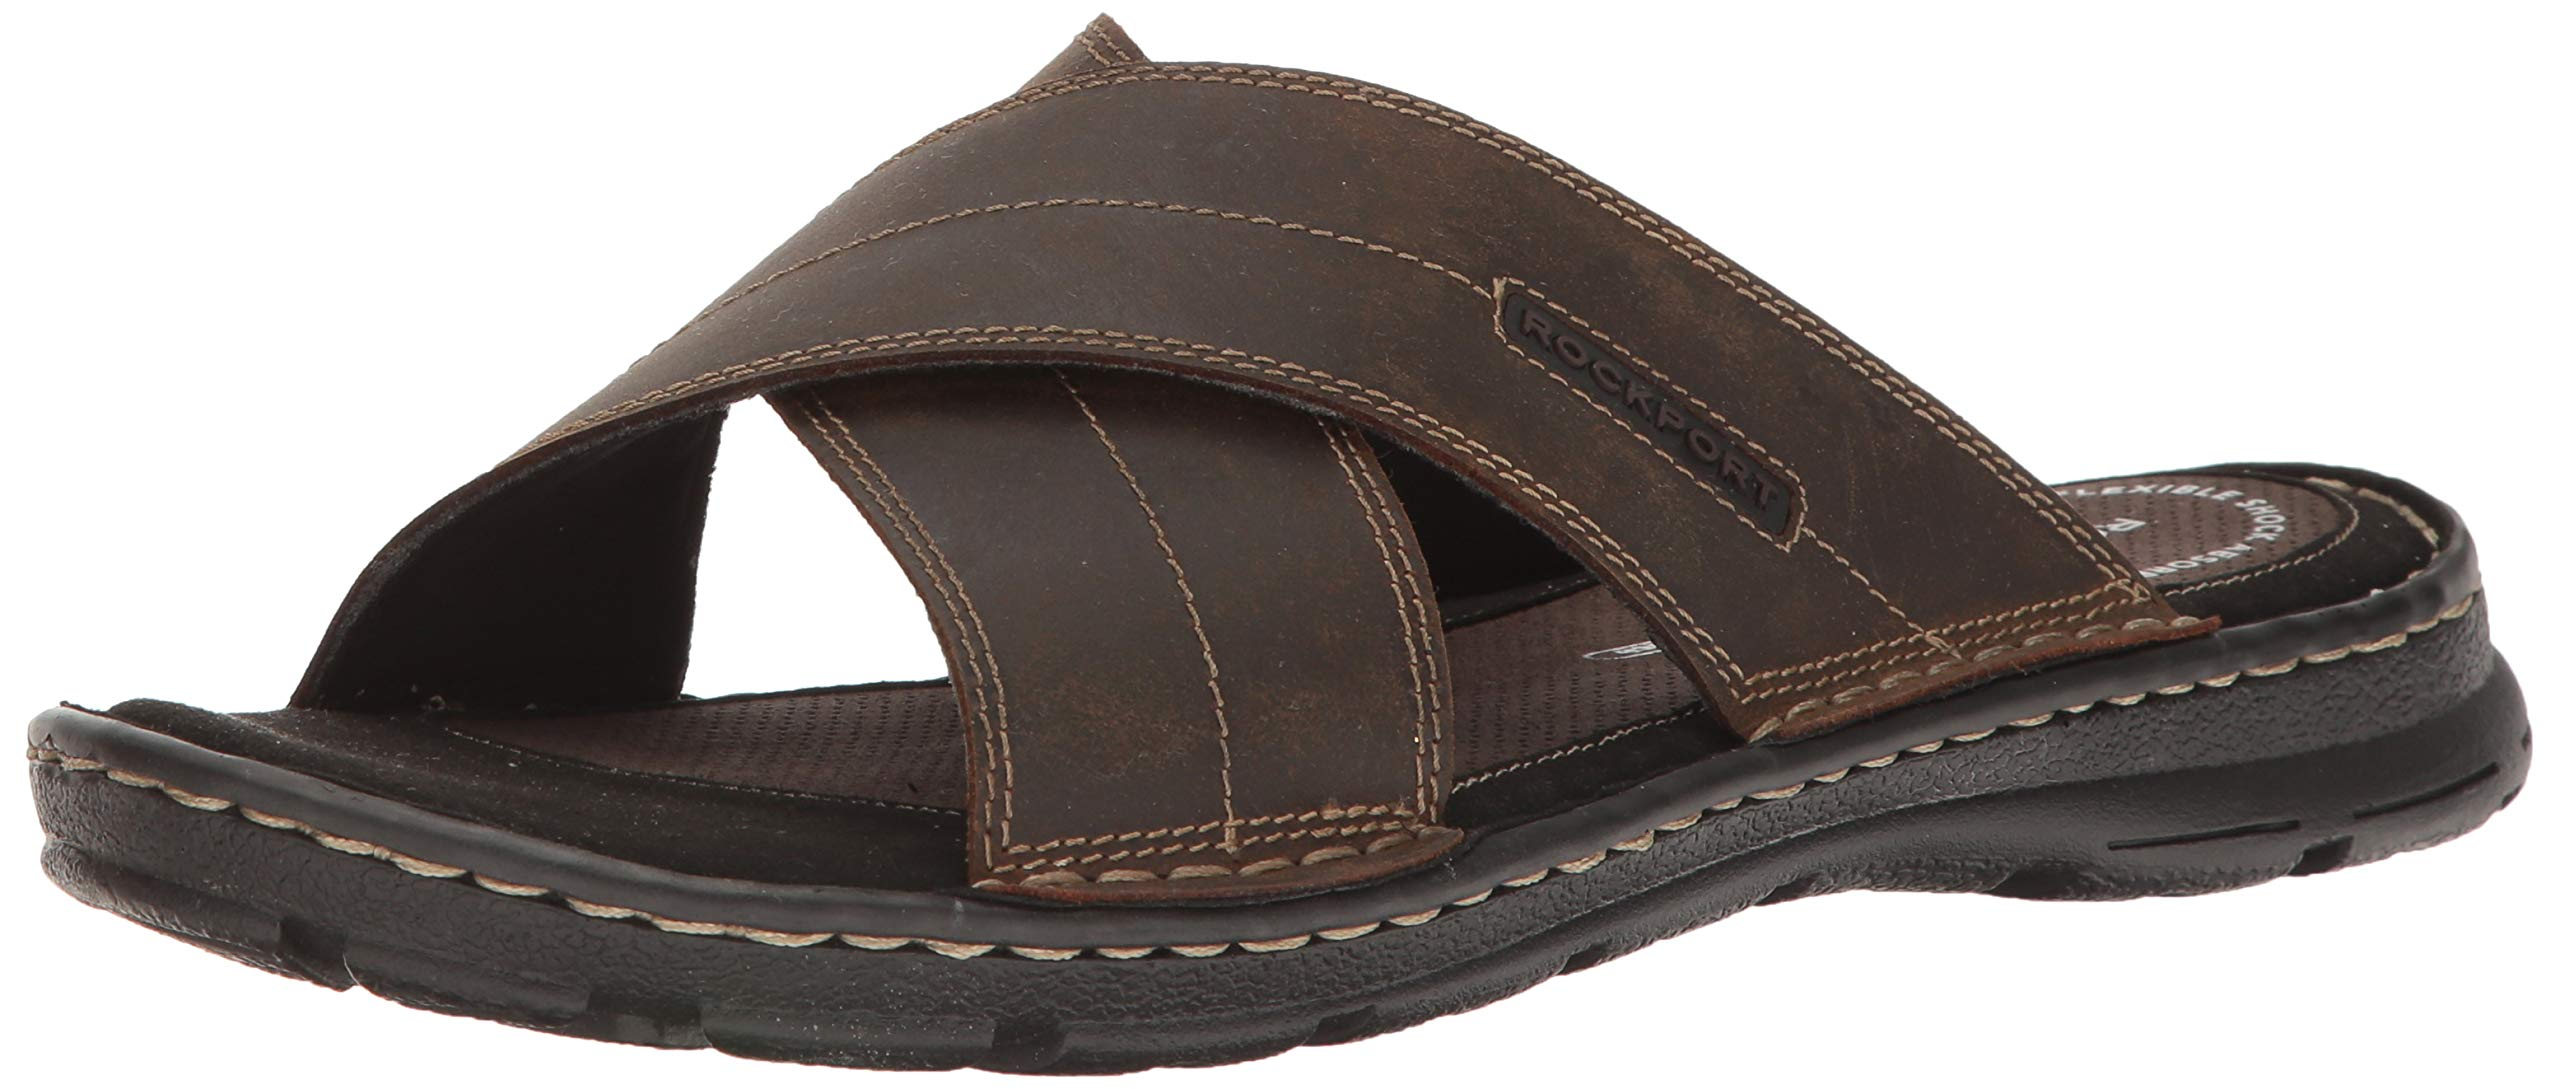 Rockport Men's Darwyn Xband Slide Sandal, Brown Leather, 10.5 M US by Rockport